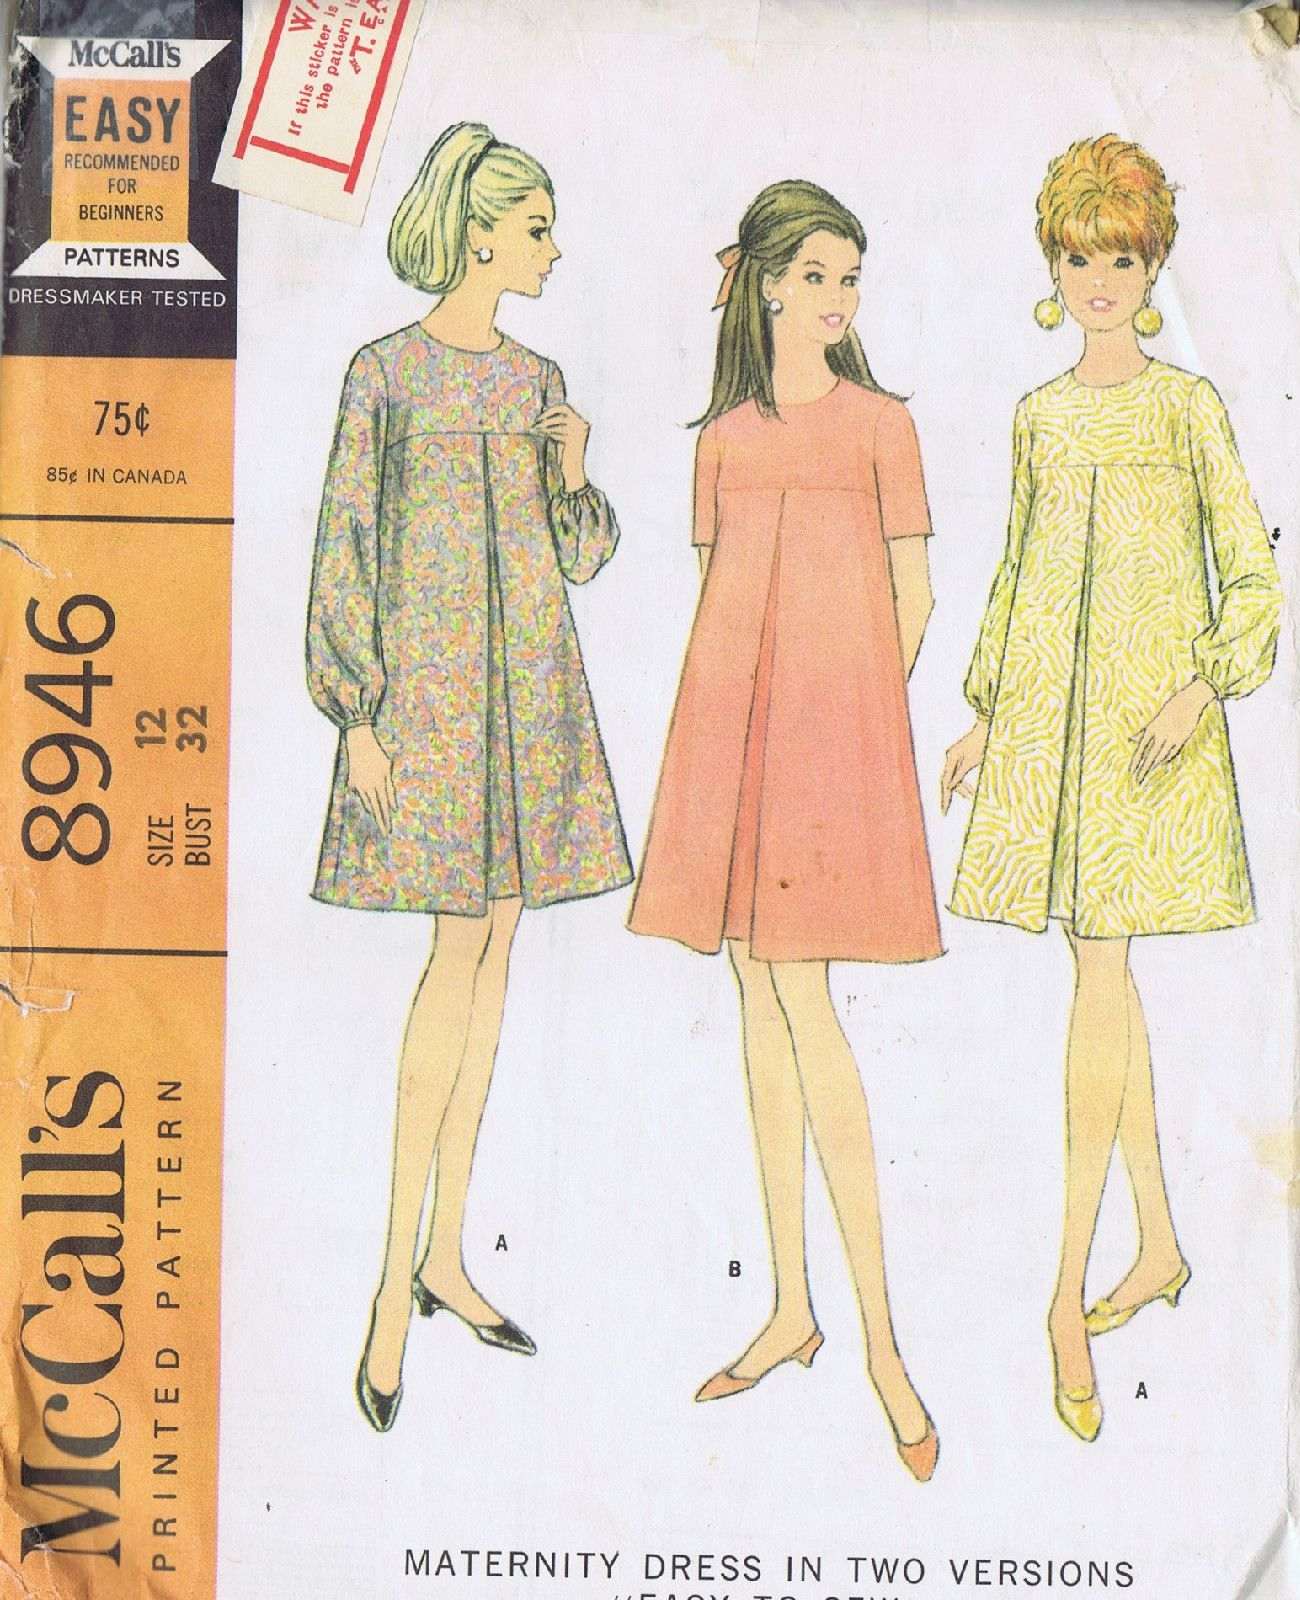 Vintage maternity dress sewing pattern mccall 8946 size 12 bust 32 vintage maternity dress sewing pattern mccall 8946 size 12 bust 32 hip 34 uncut ebay ombrellifo Images